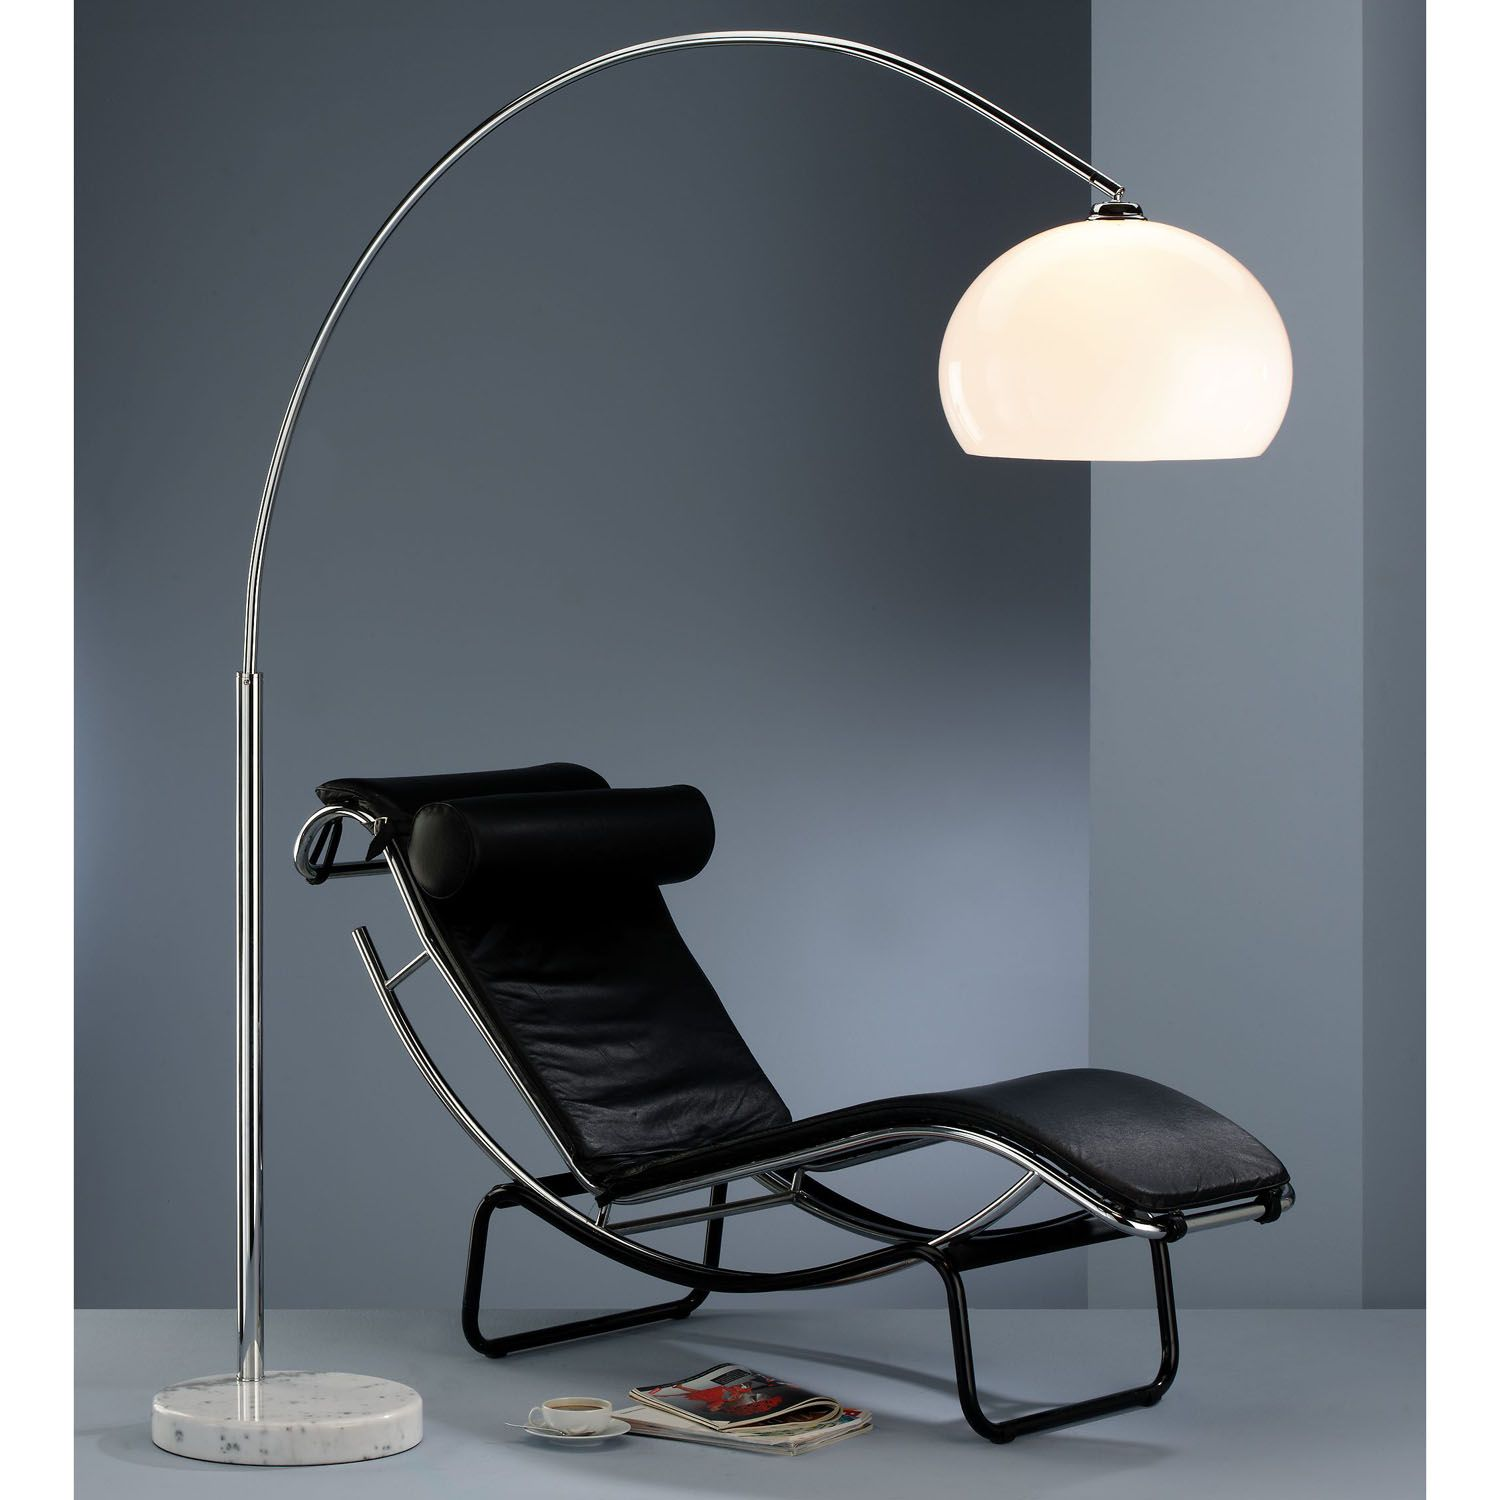 Awesome Arc Lamp With White Glass Lampshde And Black Leather Lounge